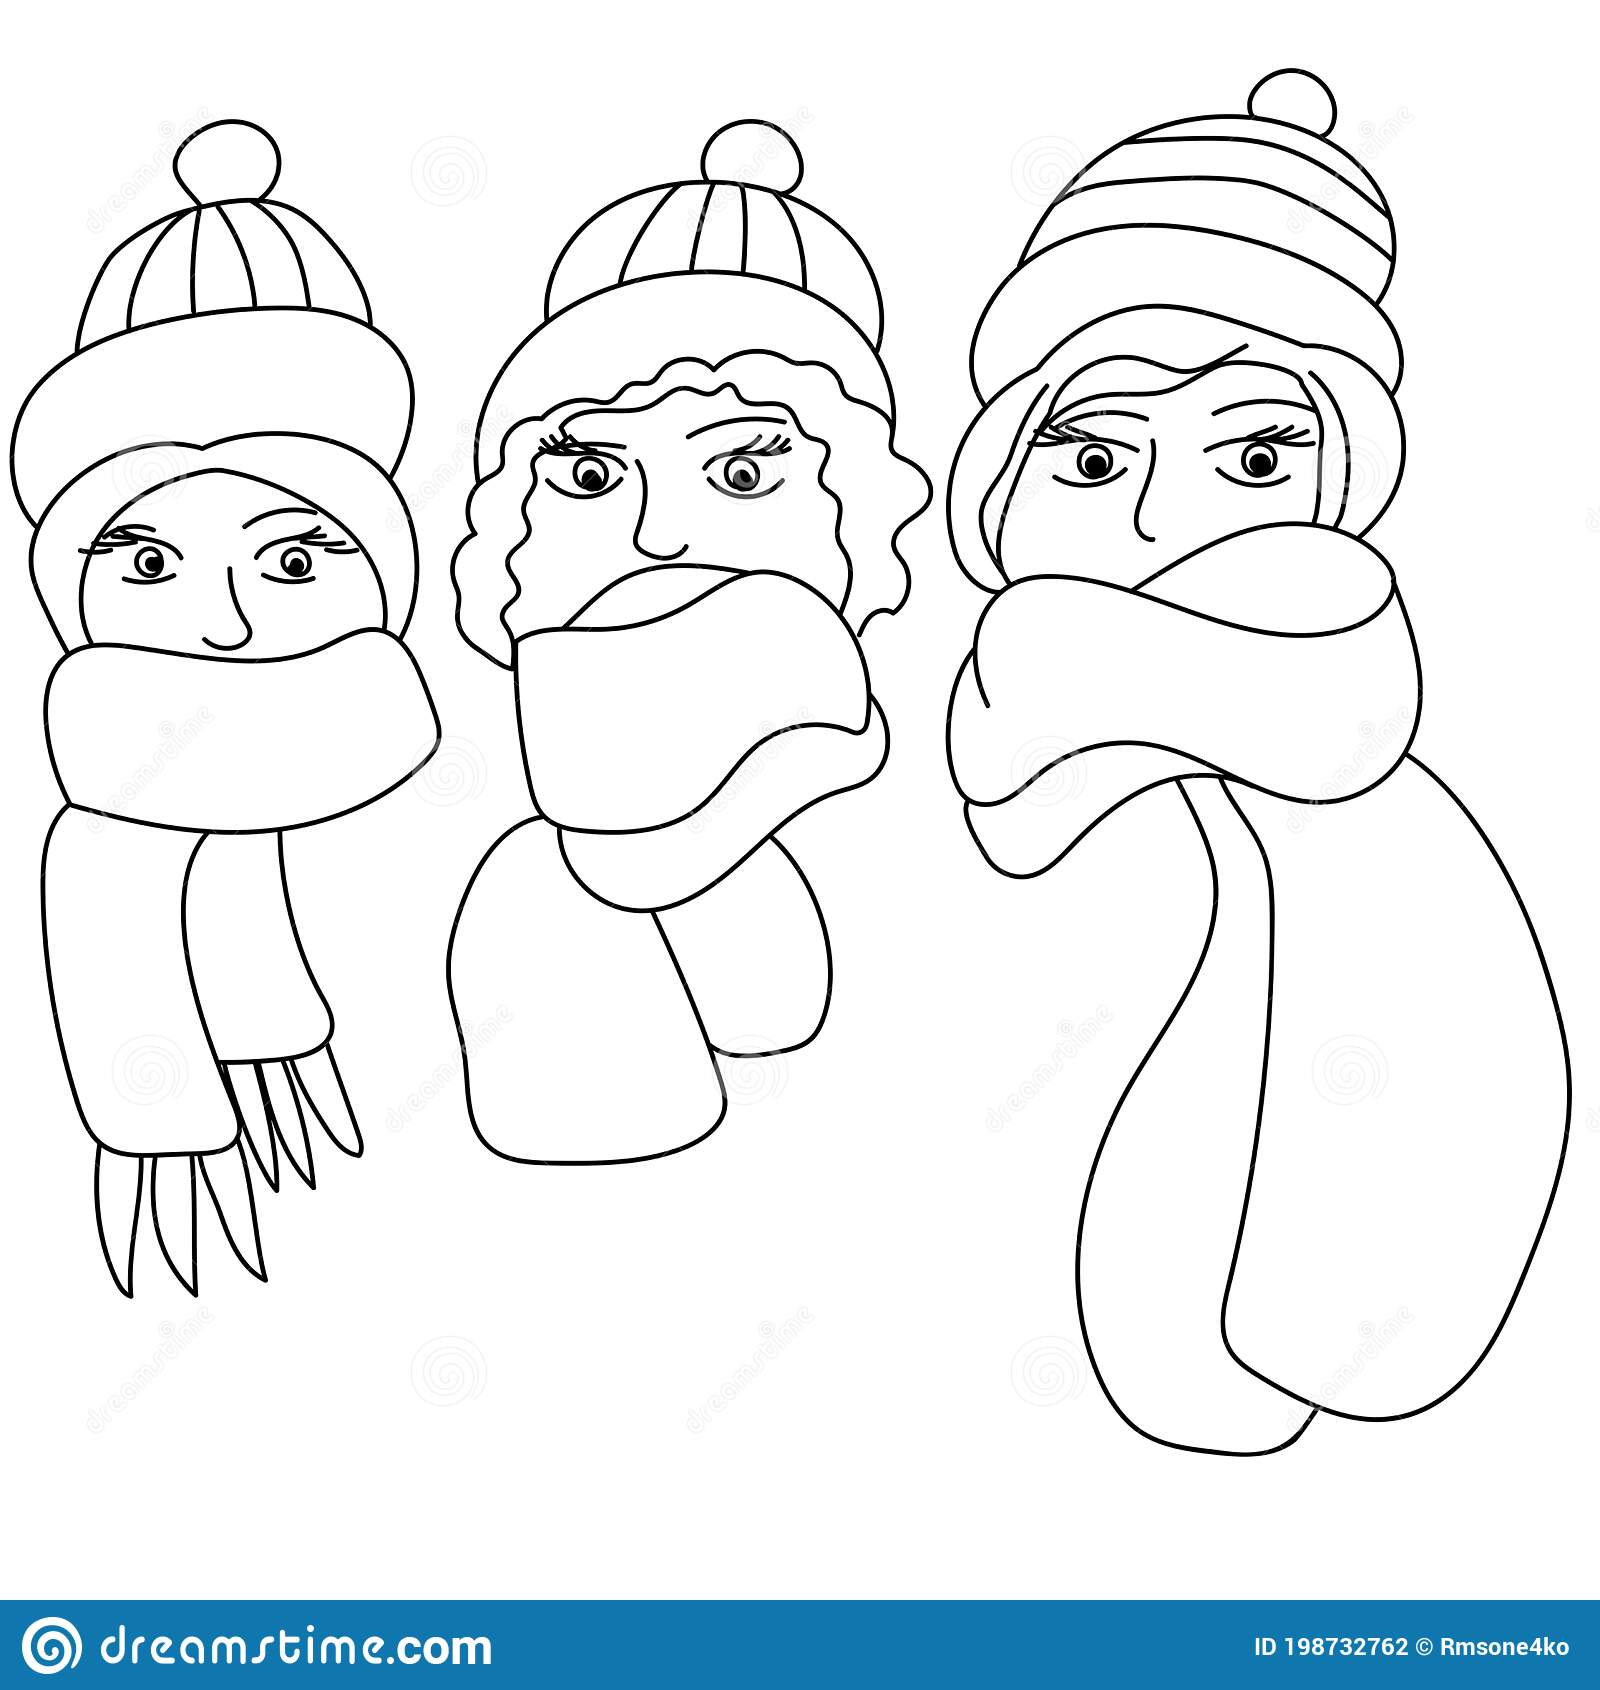 Three Winter Girls Coloring Page, Head In A Warm Hat And A Cozy ...